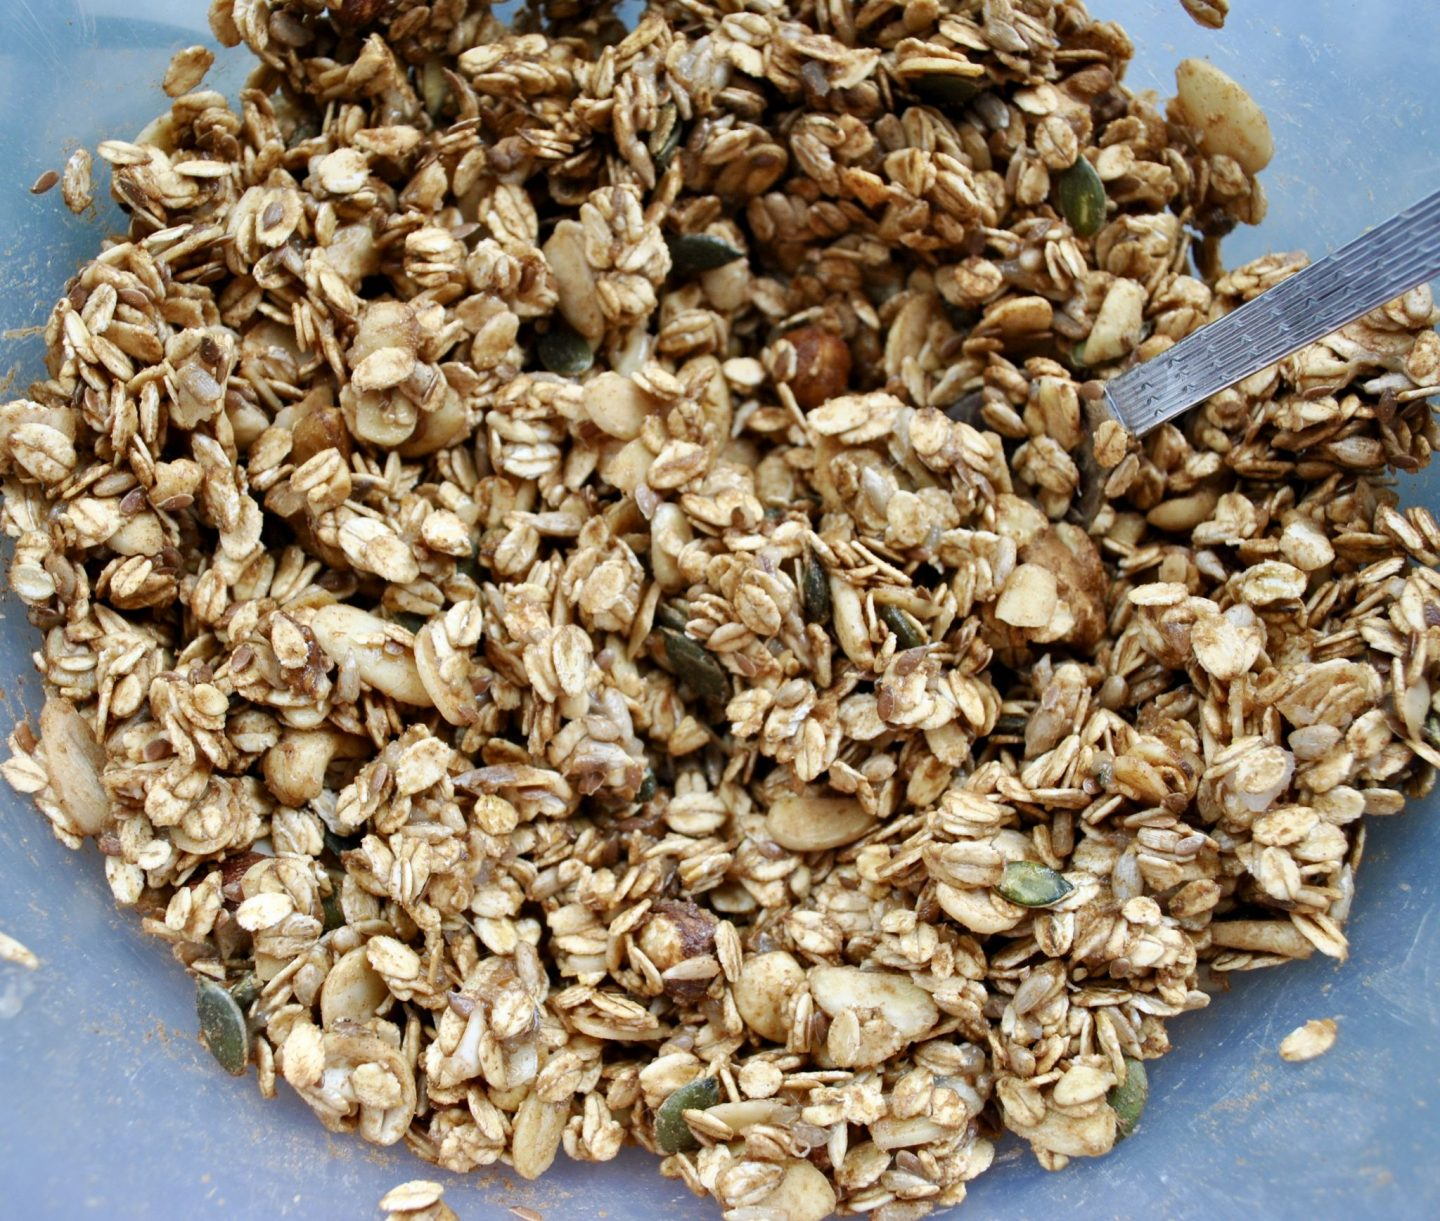 Banana Nut Crunch Granola